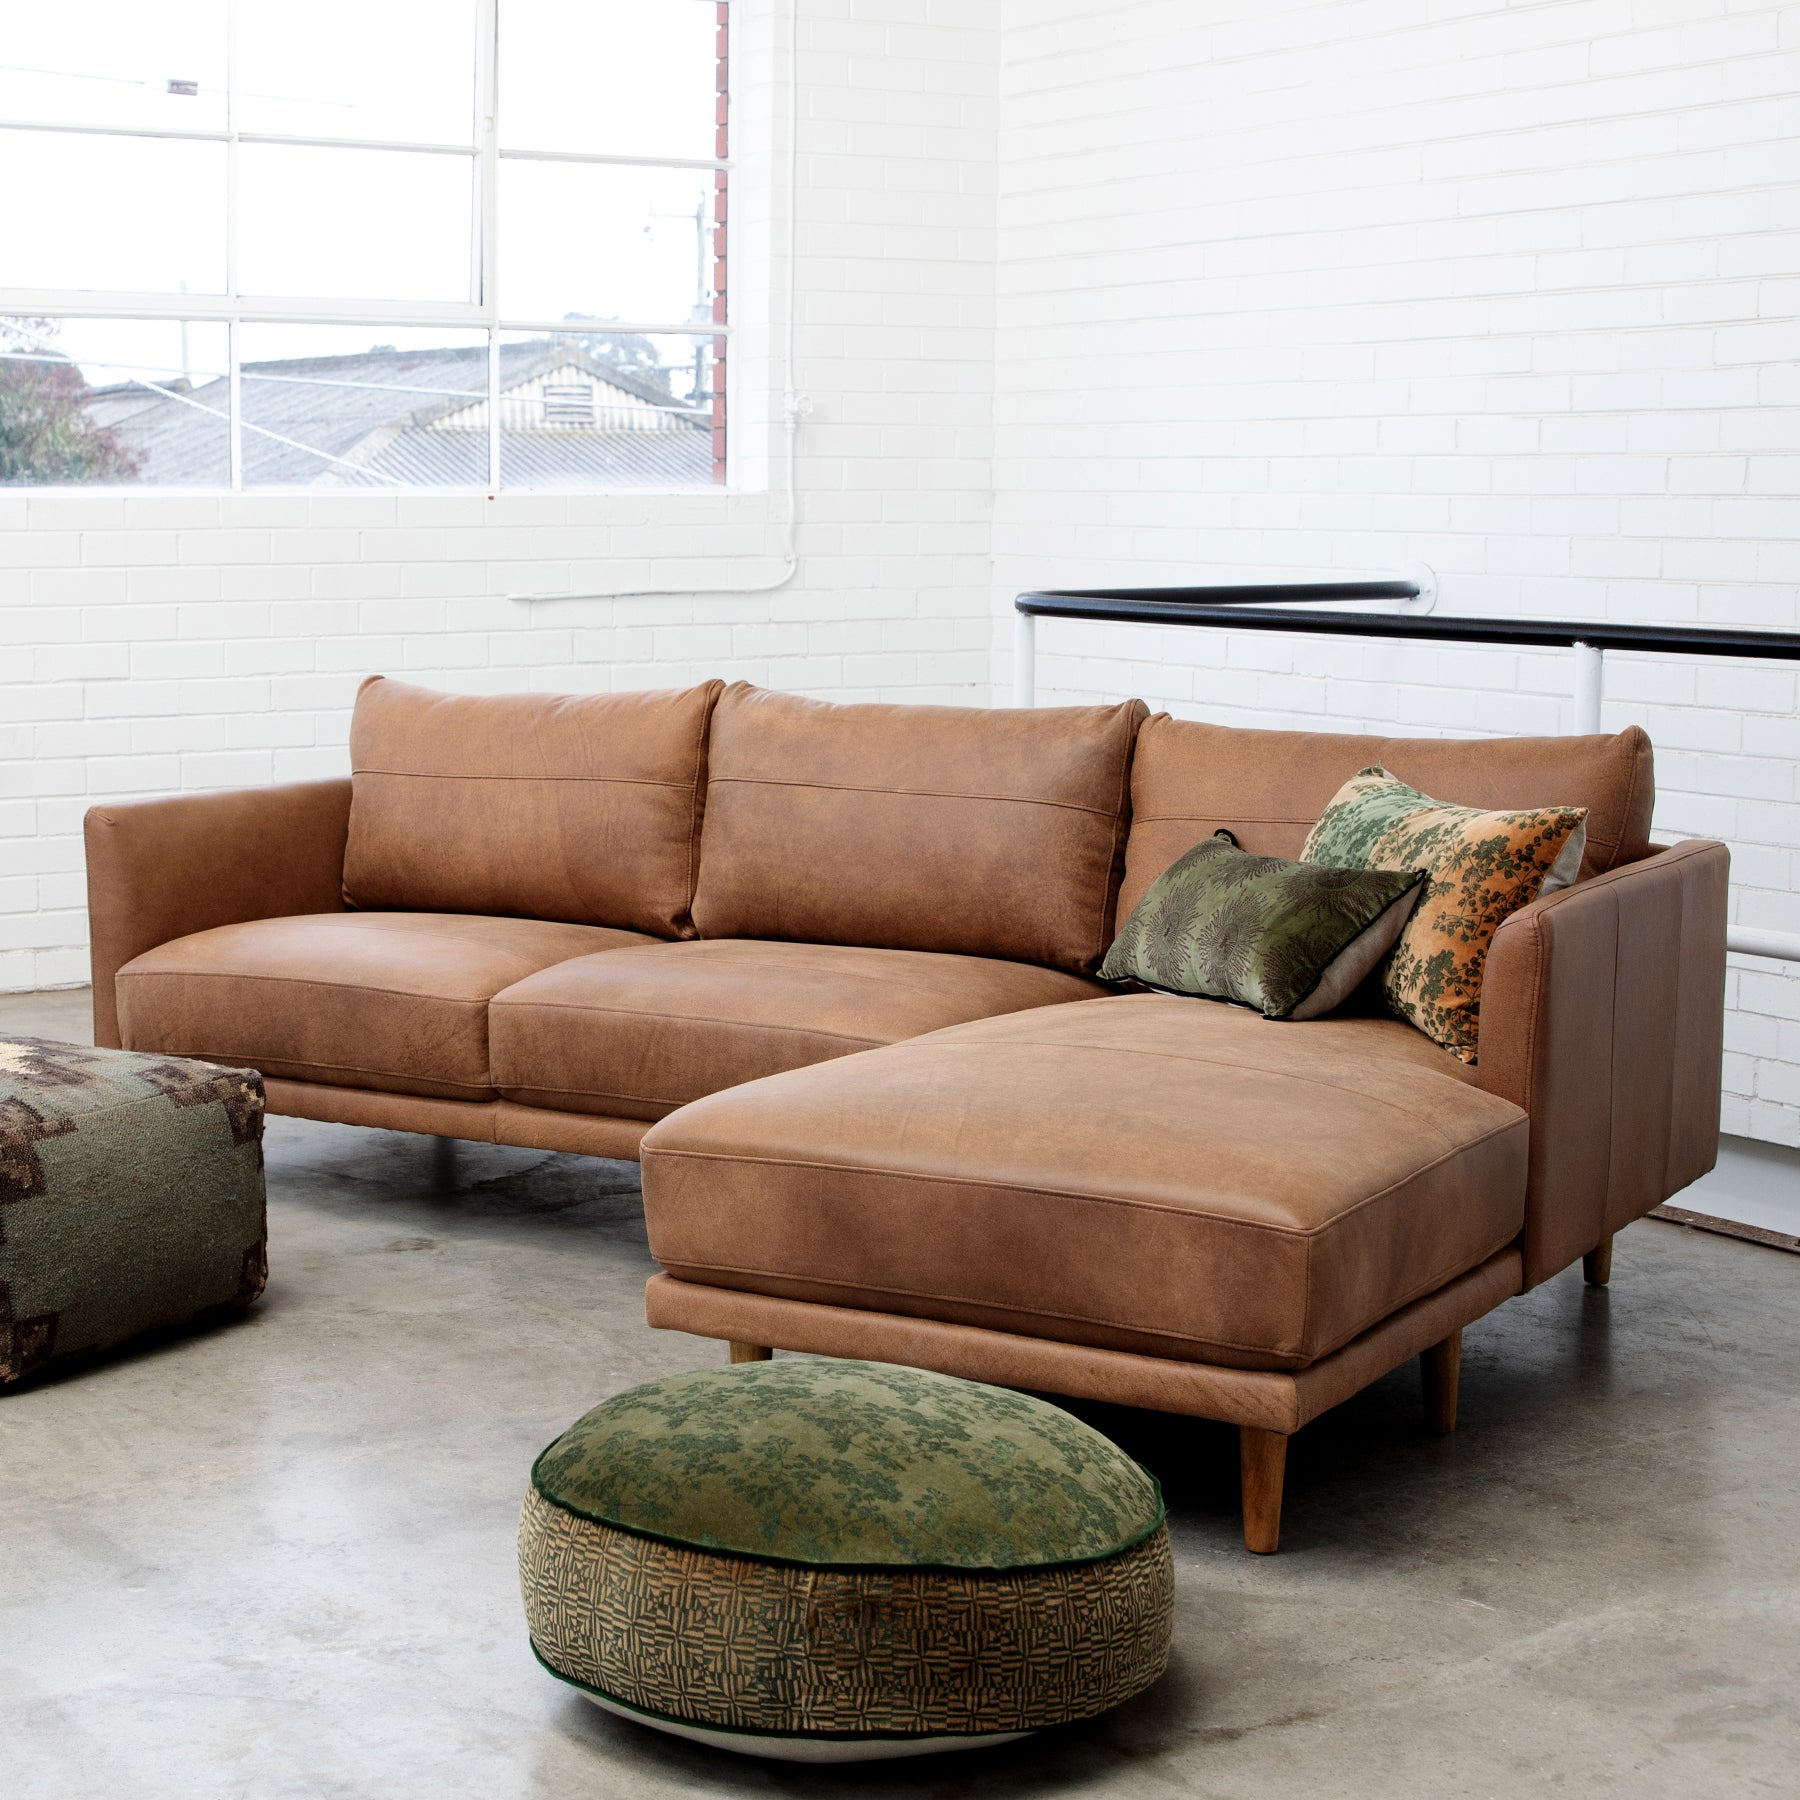 Modular Sofas, Chaises & Sectionals